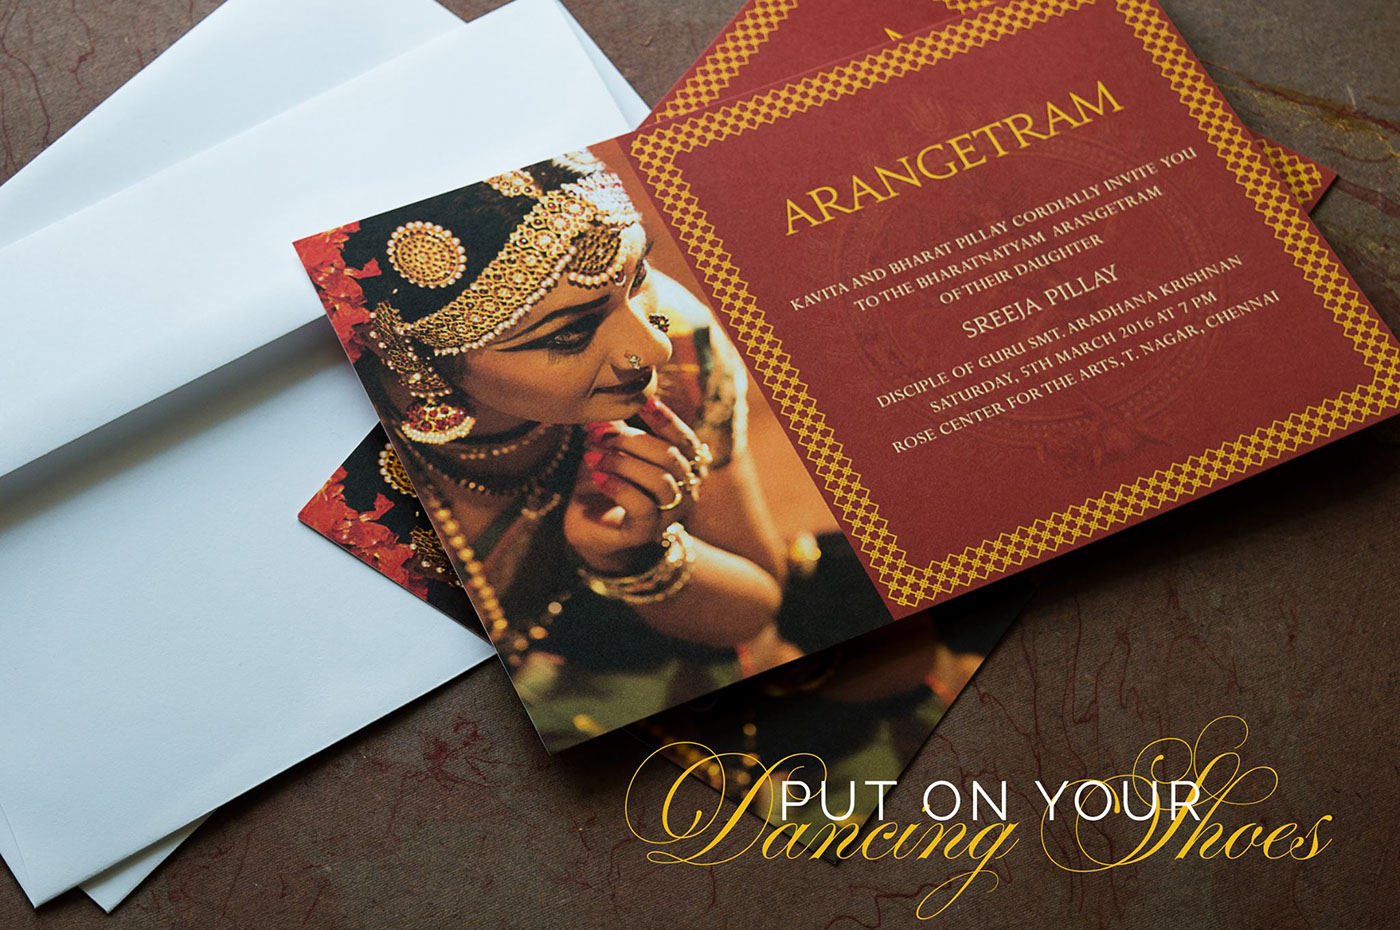 Earthy Nataraja - Arangetram Invitation for Inksedge on ...